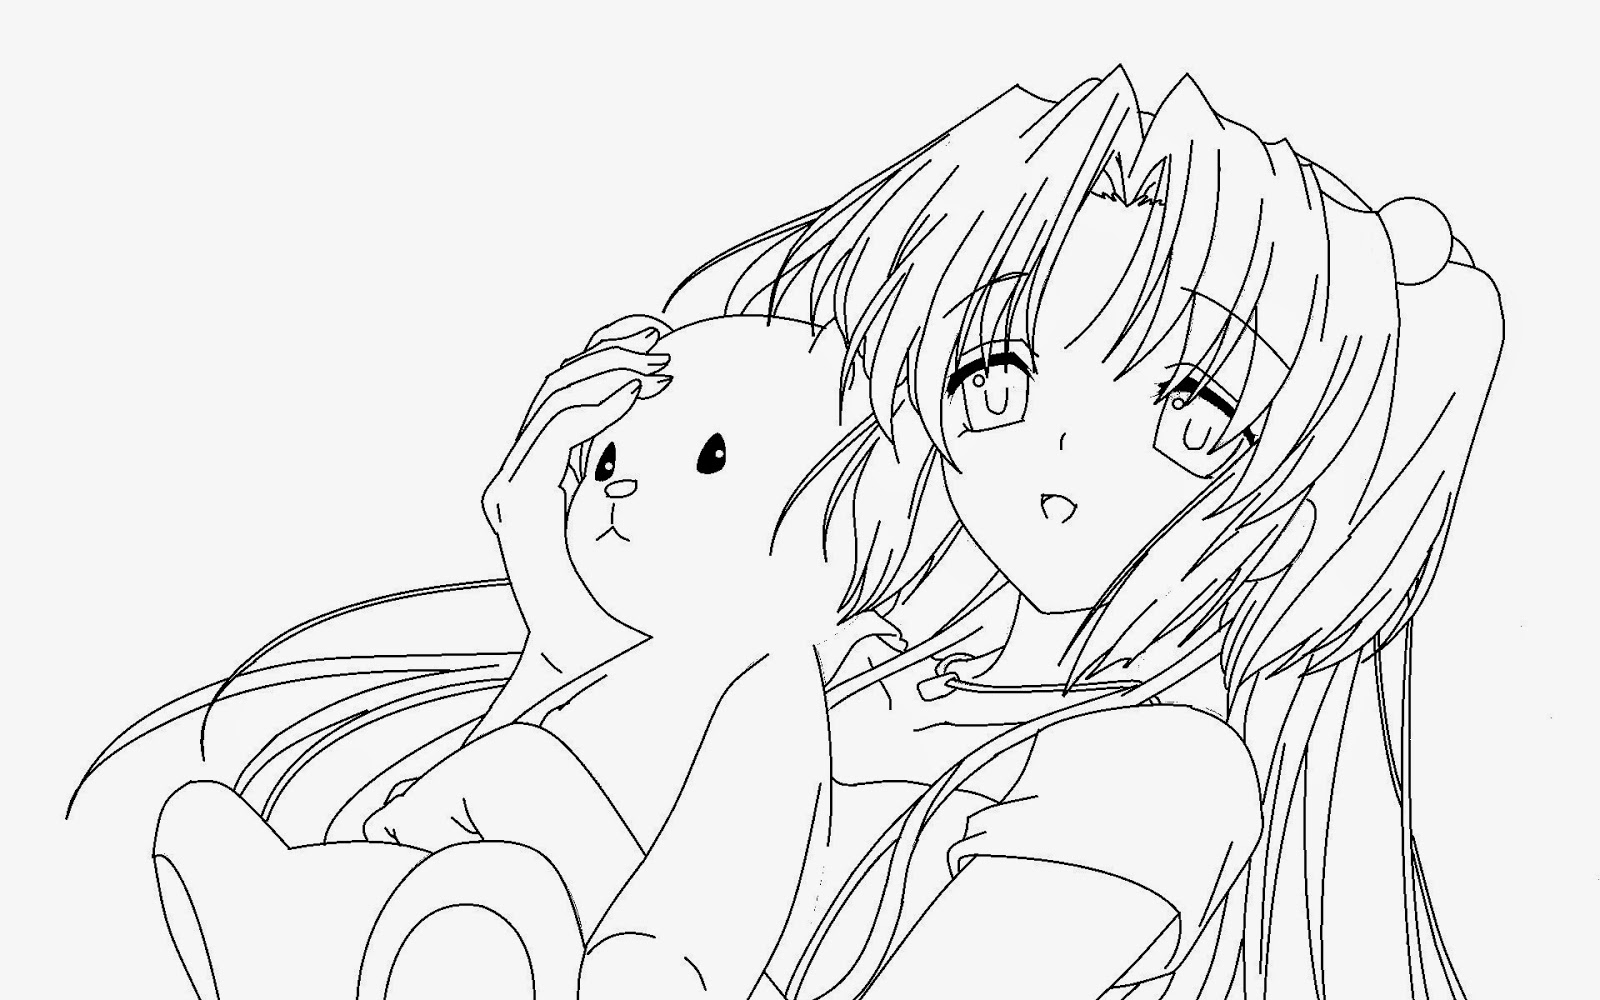 coloring pages anime no color coloring pages anime coloring pages free and printable anime no pages color coloring